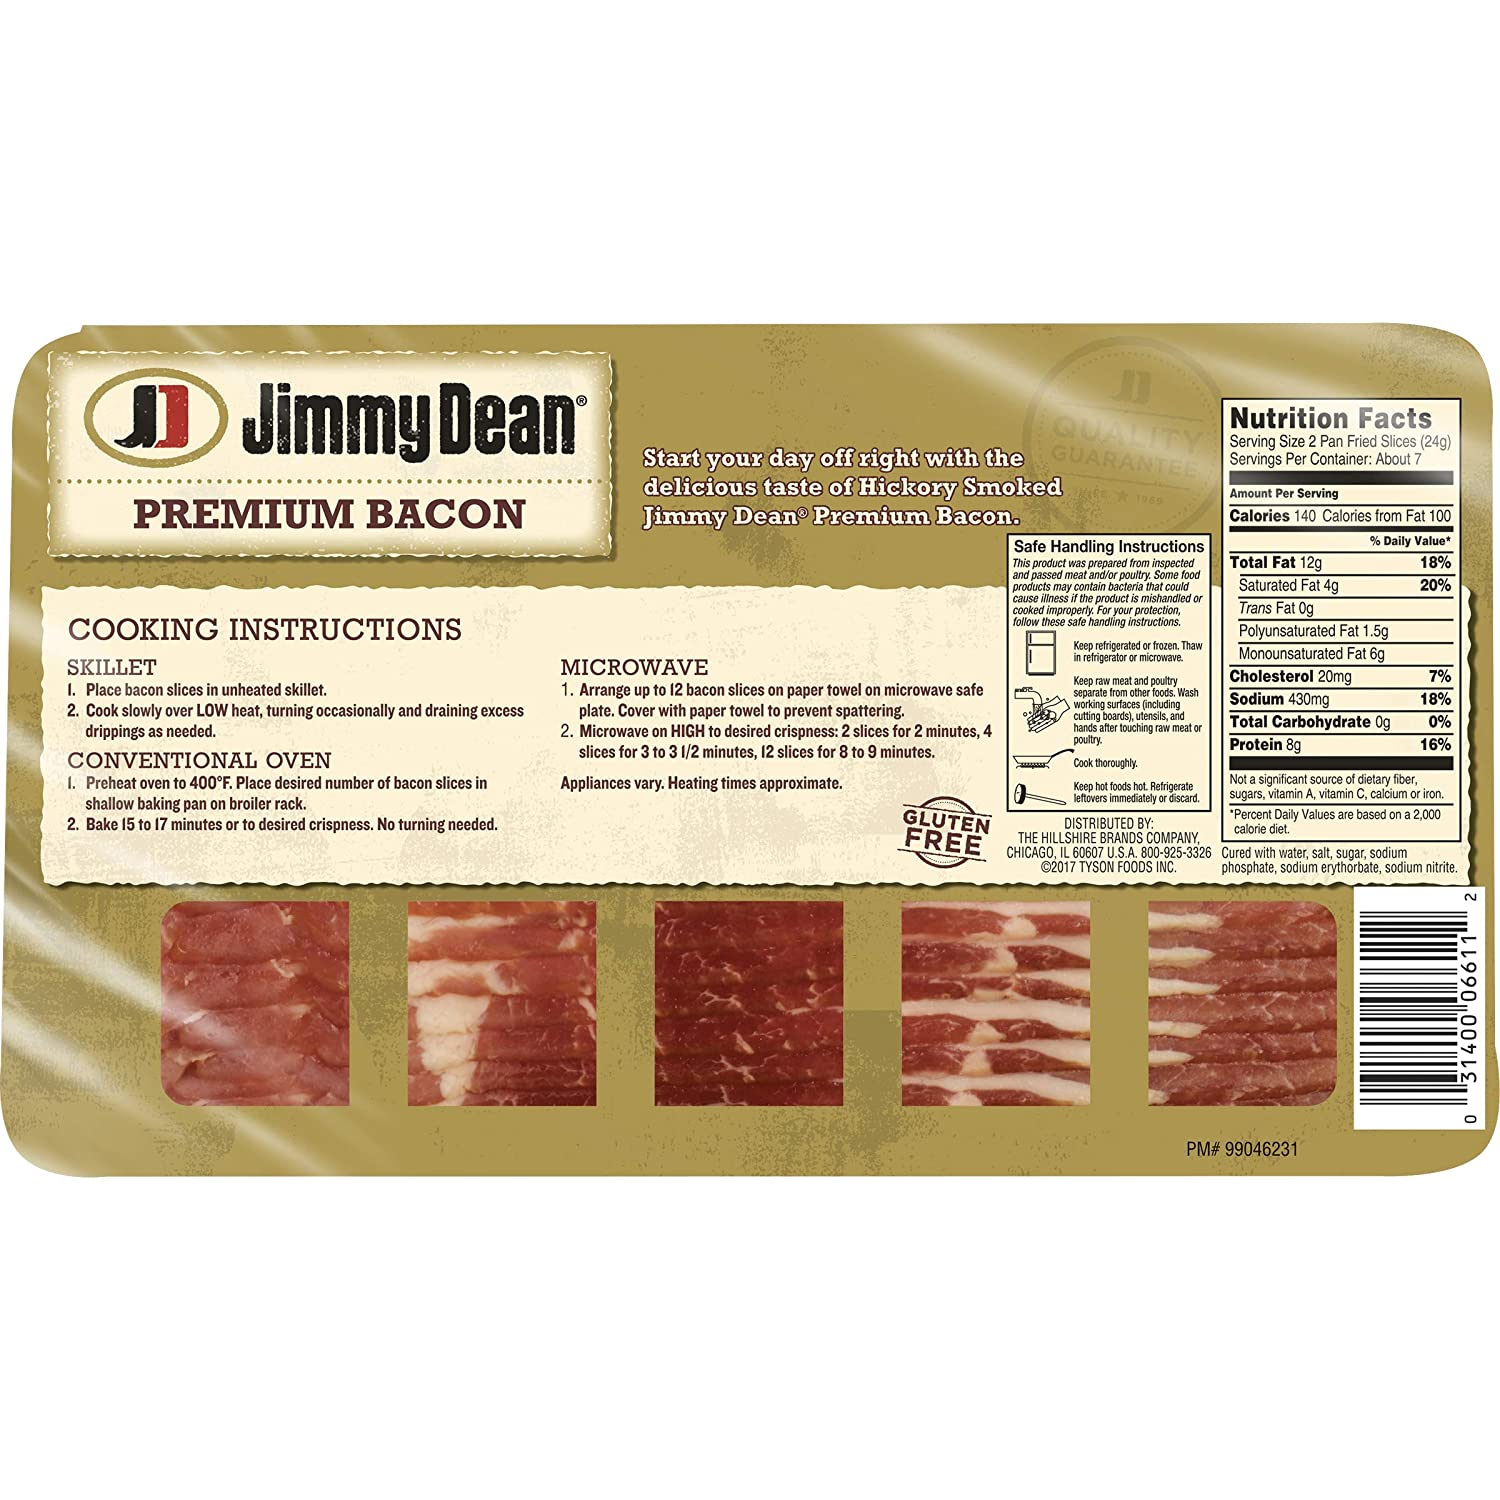 Jimmy Dean, Premium Hickory Smoked Bacon, 16 oz.: Amazon.com: Grocery & Gourmet Food